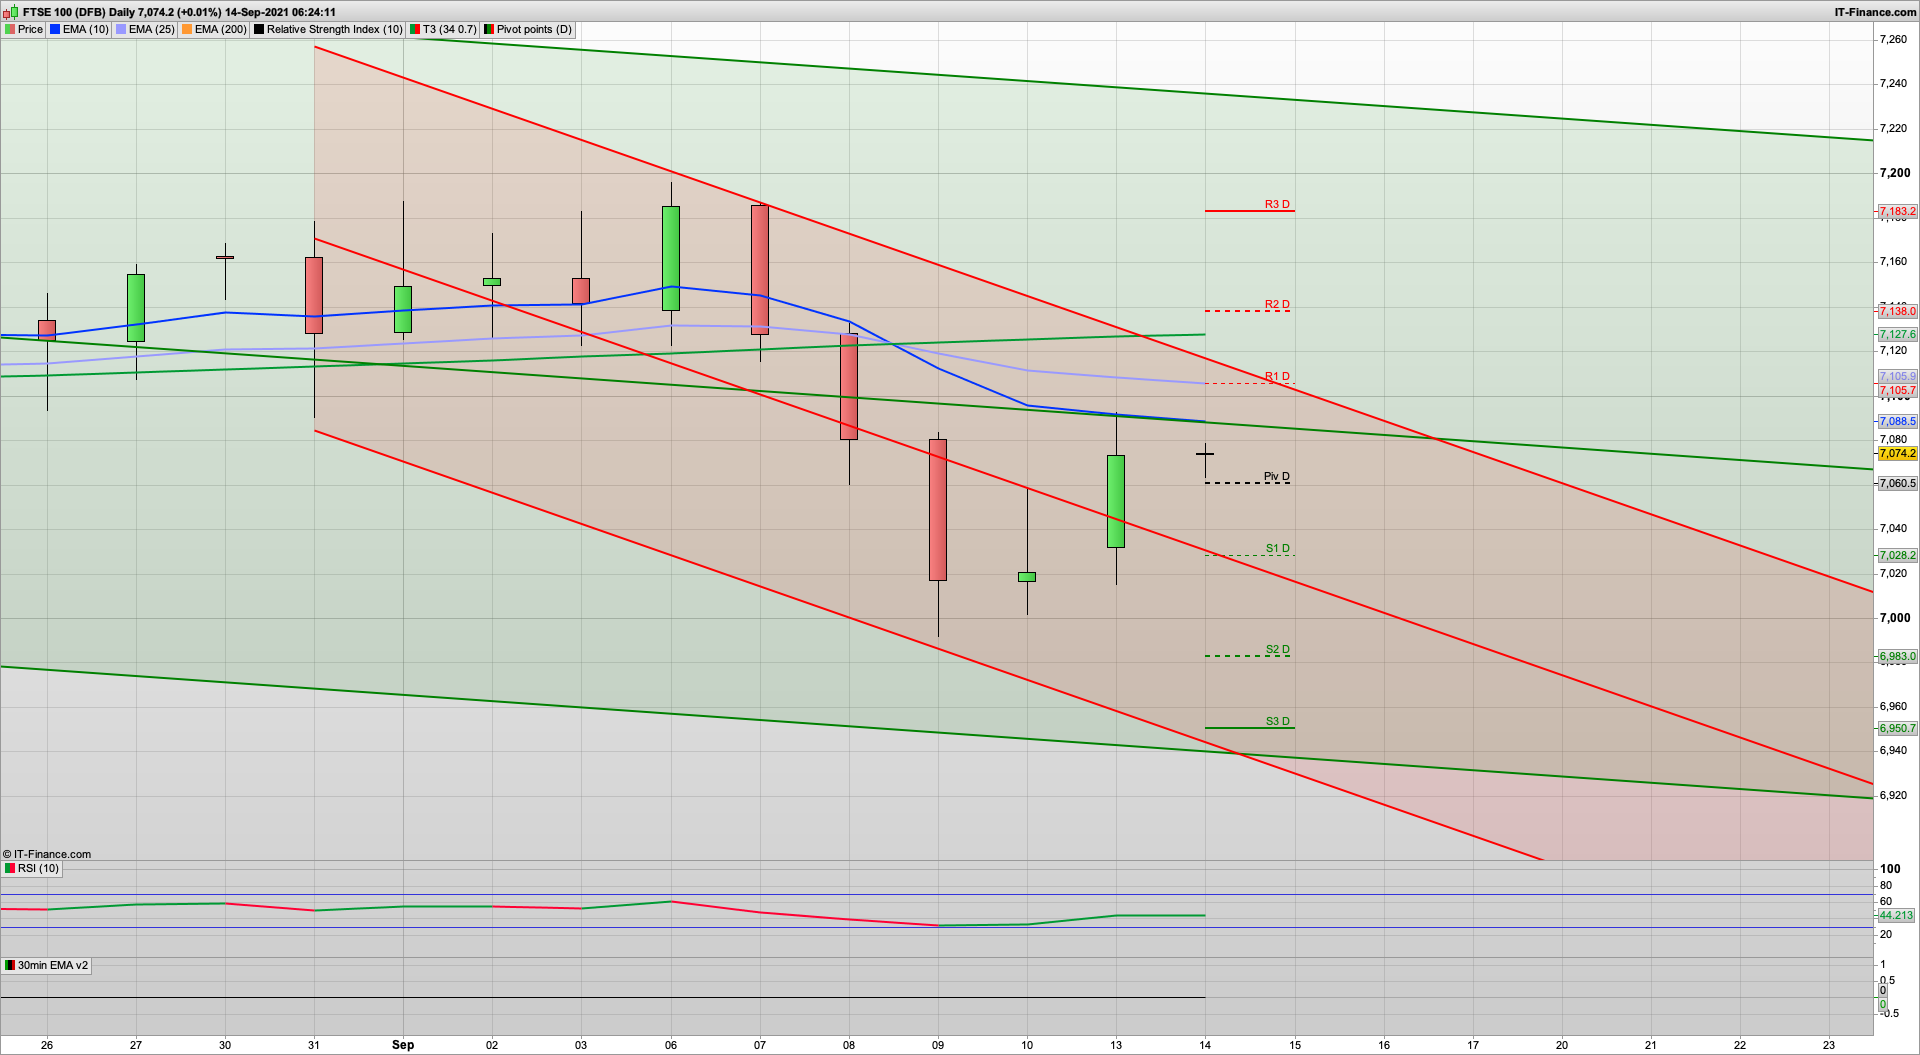 Potential bear Tuesday with 7050 7018 6983 support   7105 7116 7138 resistance